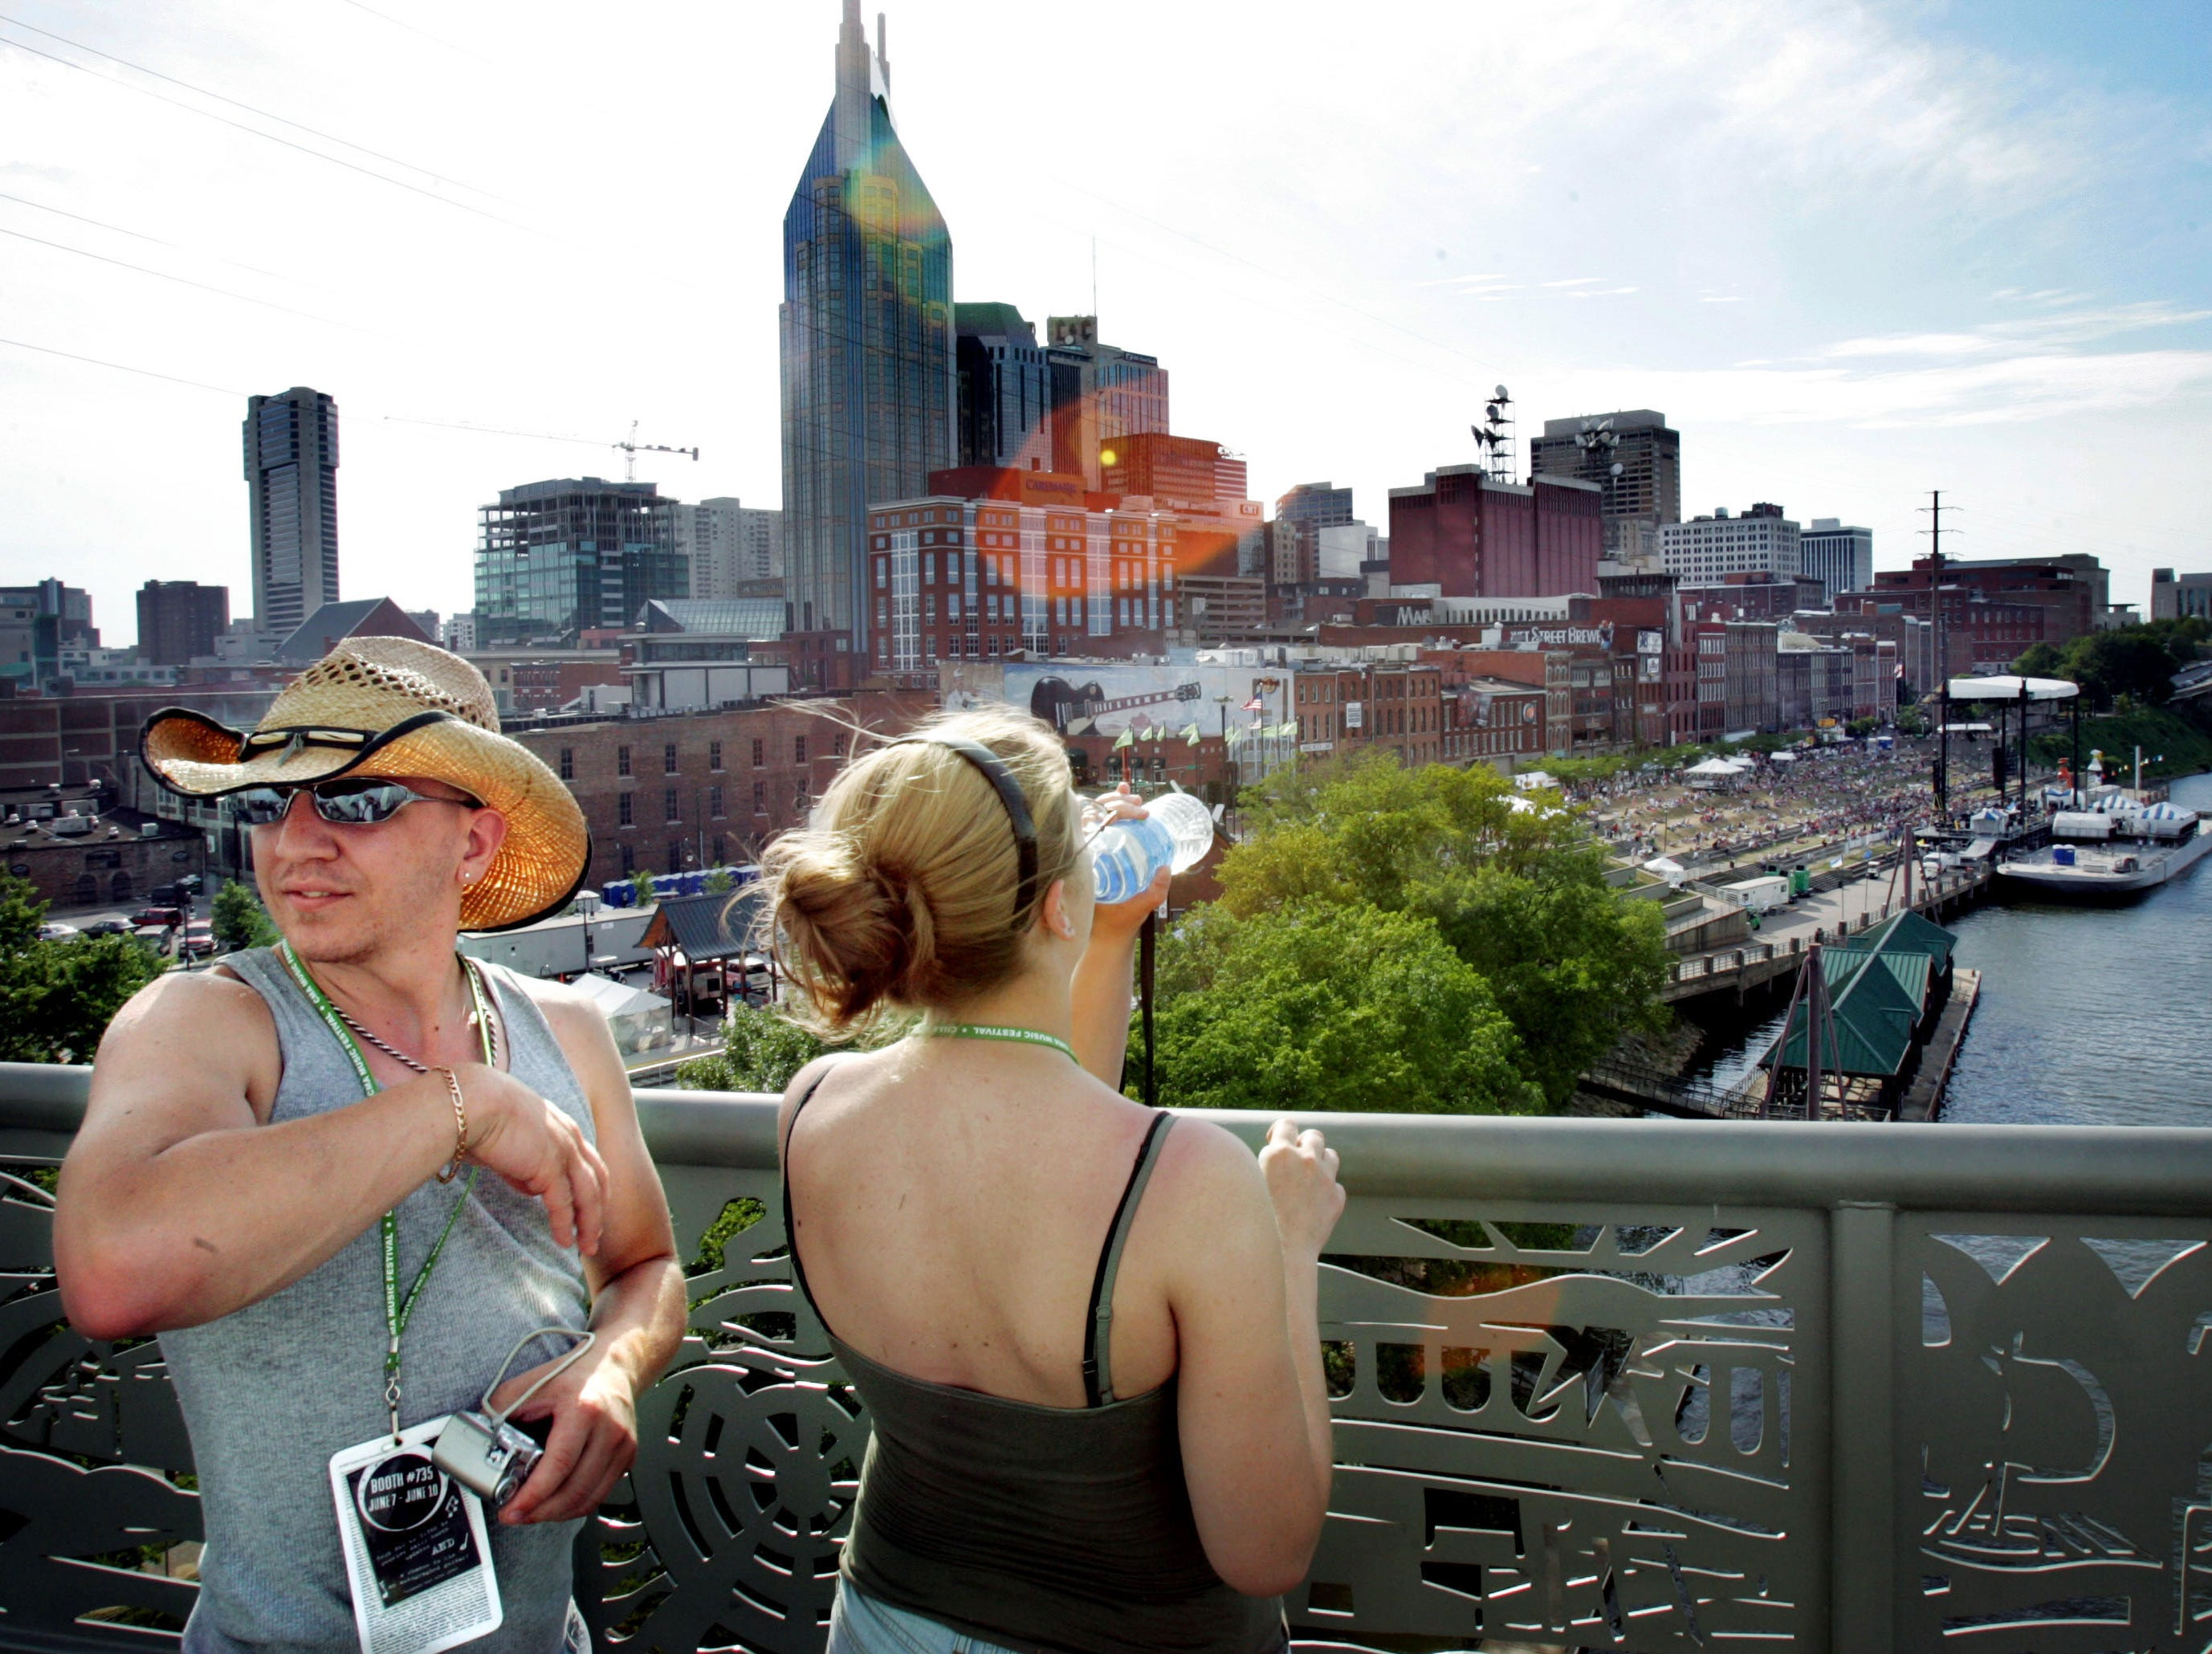 Josh Brace and Sarah Venditti take in the view of the Nashville skyline from the Shelby Street pedestrian bridge June 10, 2007 during the CMA Music Festival. The couple drove 22 hours from Vermont to be a part of this years activities.